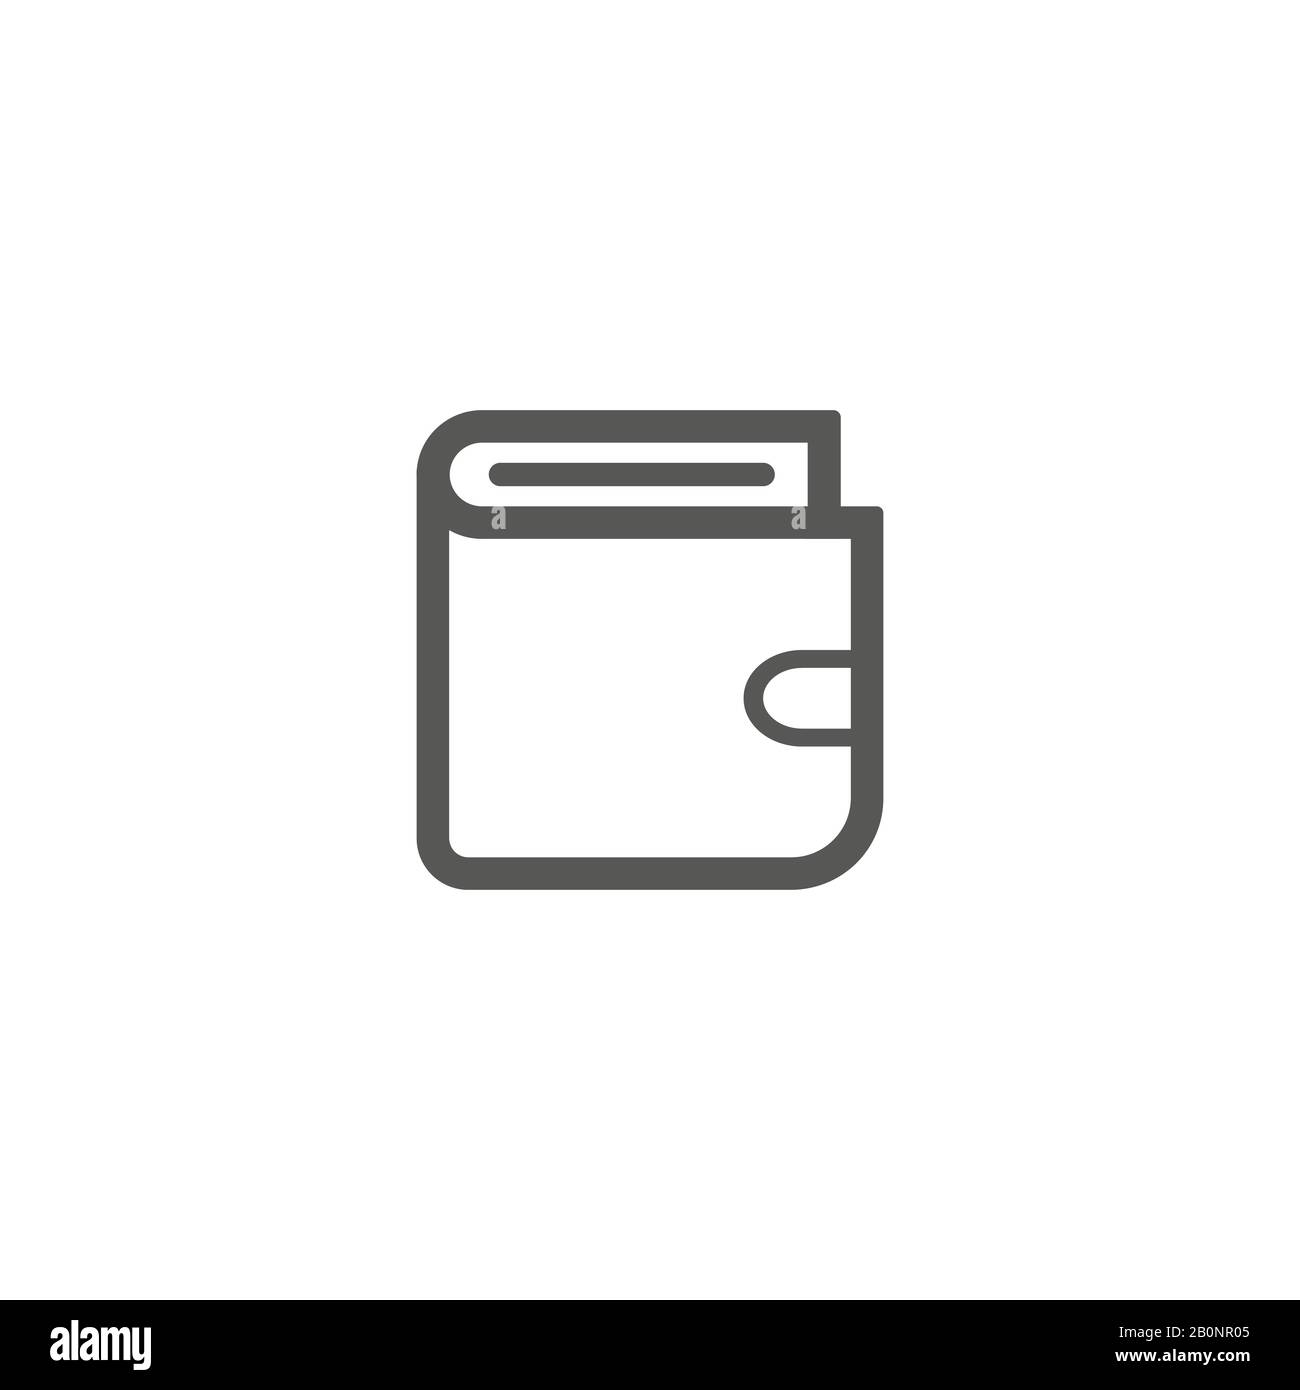 wallet icon in trendy flat style isolated on grey background wallet symbol for your web site design logo app ui vector illustration eps10 stock vector image art alamy https www alamy com wallet icon in trendy flat style isolated on grey background wallet symbol for your web site design logo app ui vector illustration eps10 image344686389 html